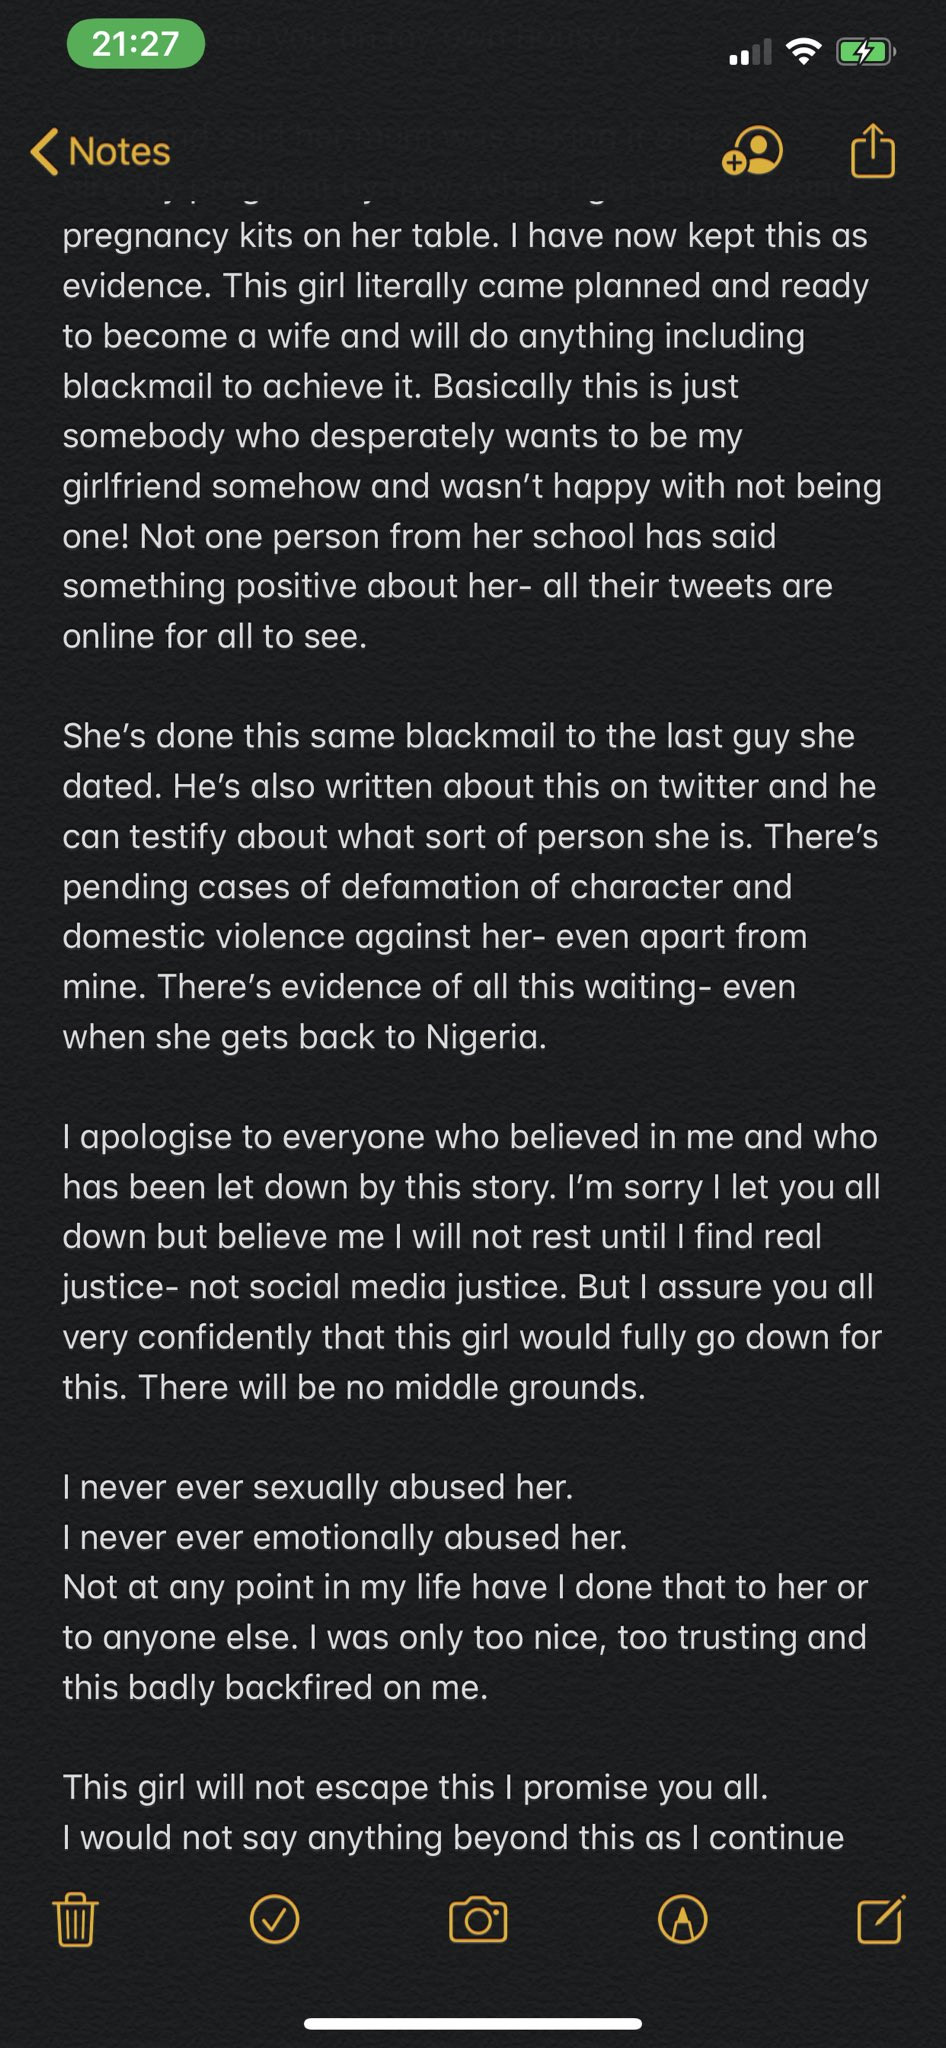 She threatened to blackmail me after traveling from Nigeria to UK to see me - Popular Nigerian doctor and Twitter influencer reacts to sexual abuse allegation lindaikejisblog 12